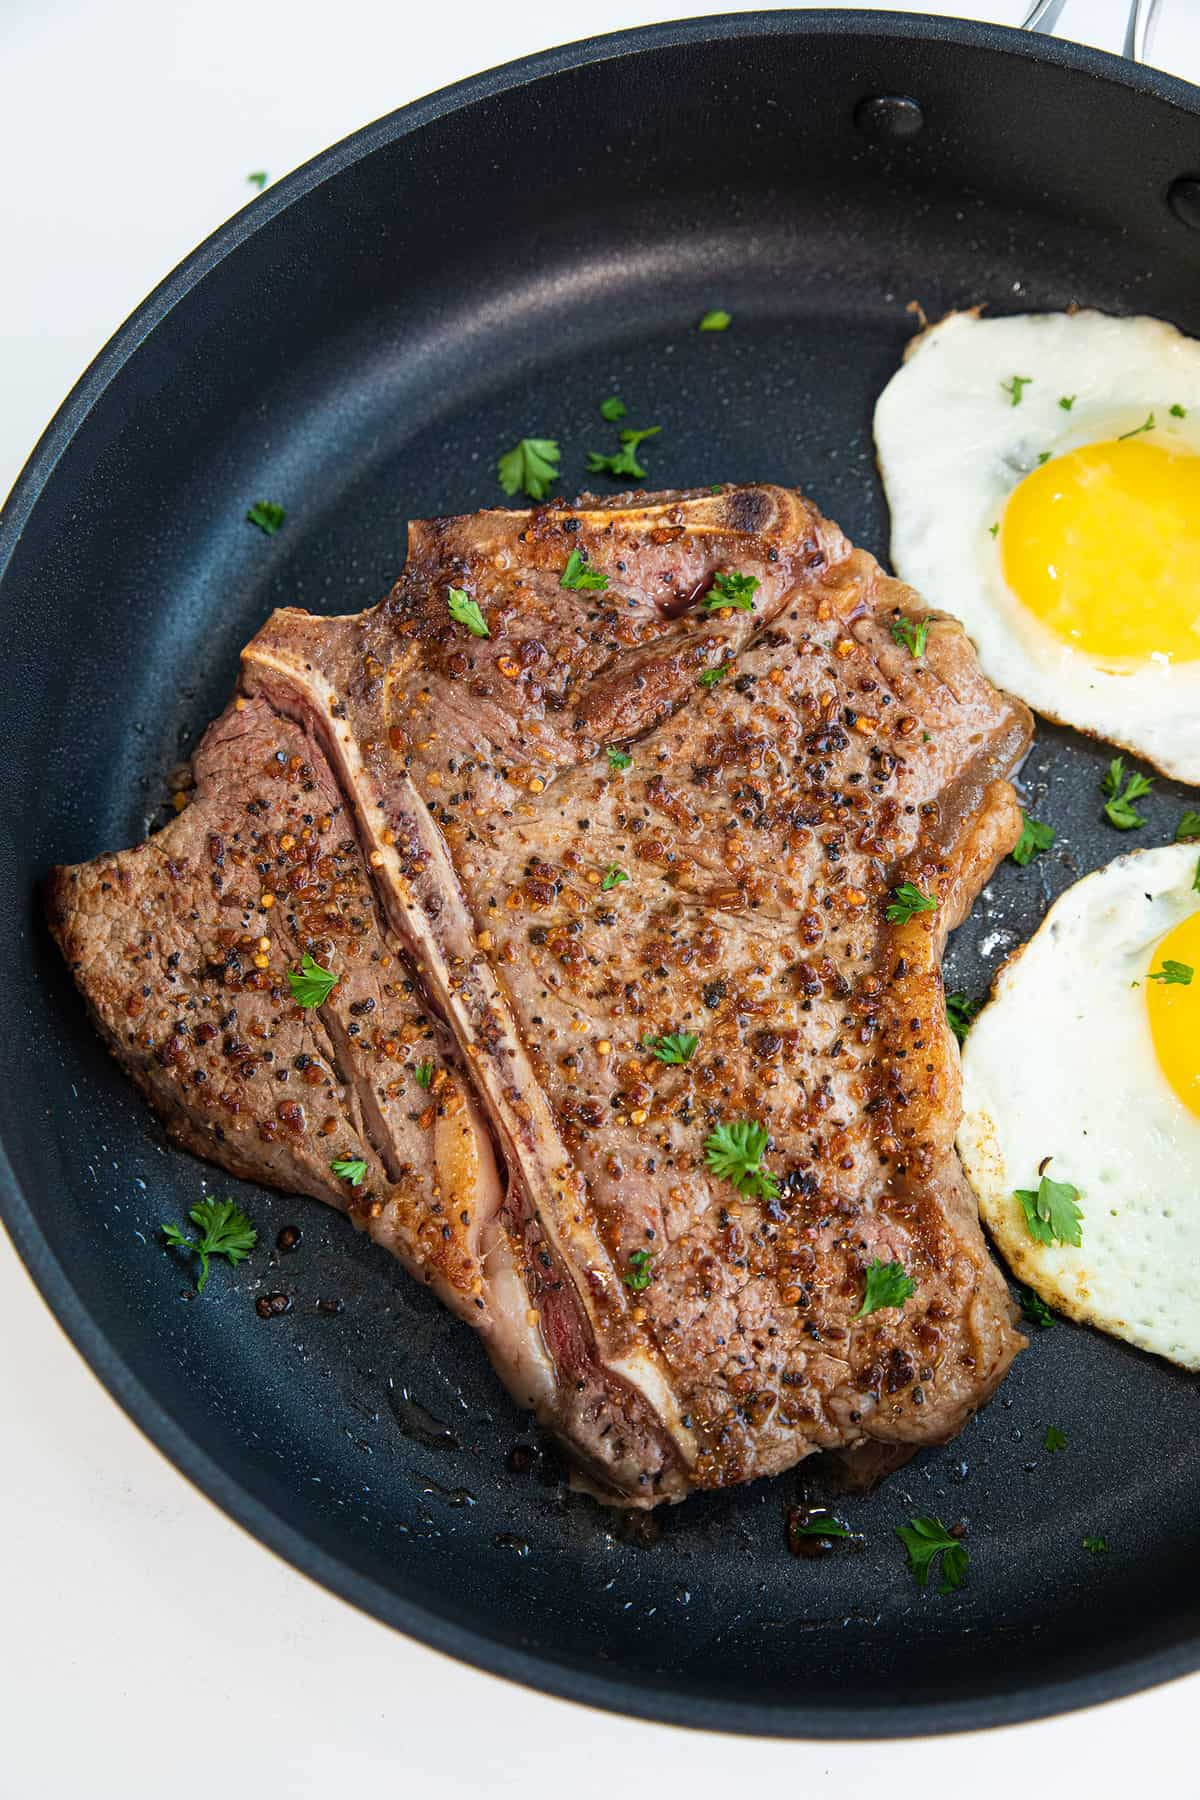 Close up of a T bone steak with two friend eggs next to it on a cast iron pan